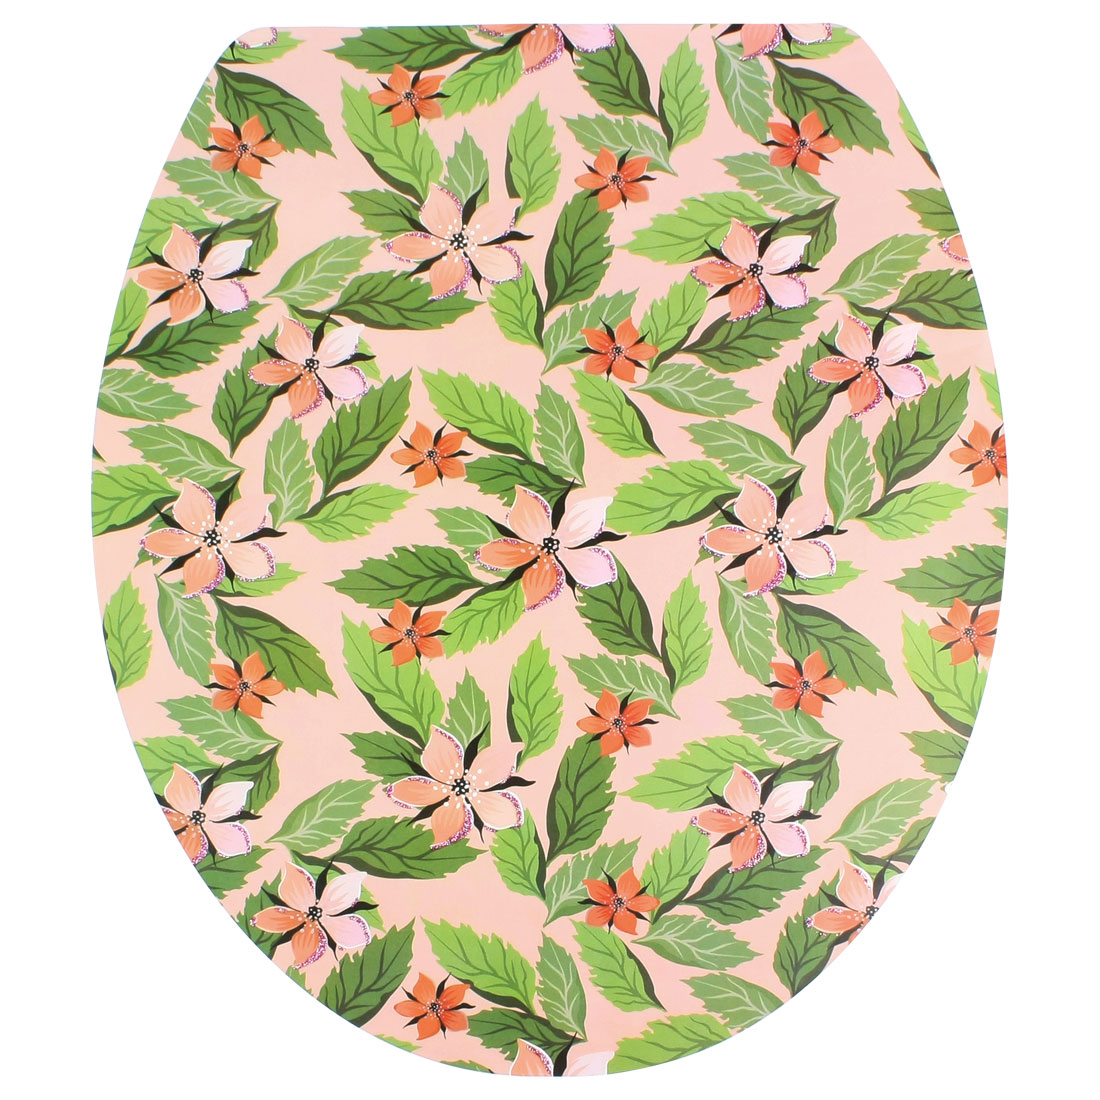 Flower Leaves Pattern Adhesive Removable Sticker Decal for Toilet Lid Shell